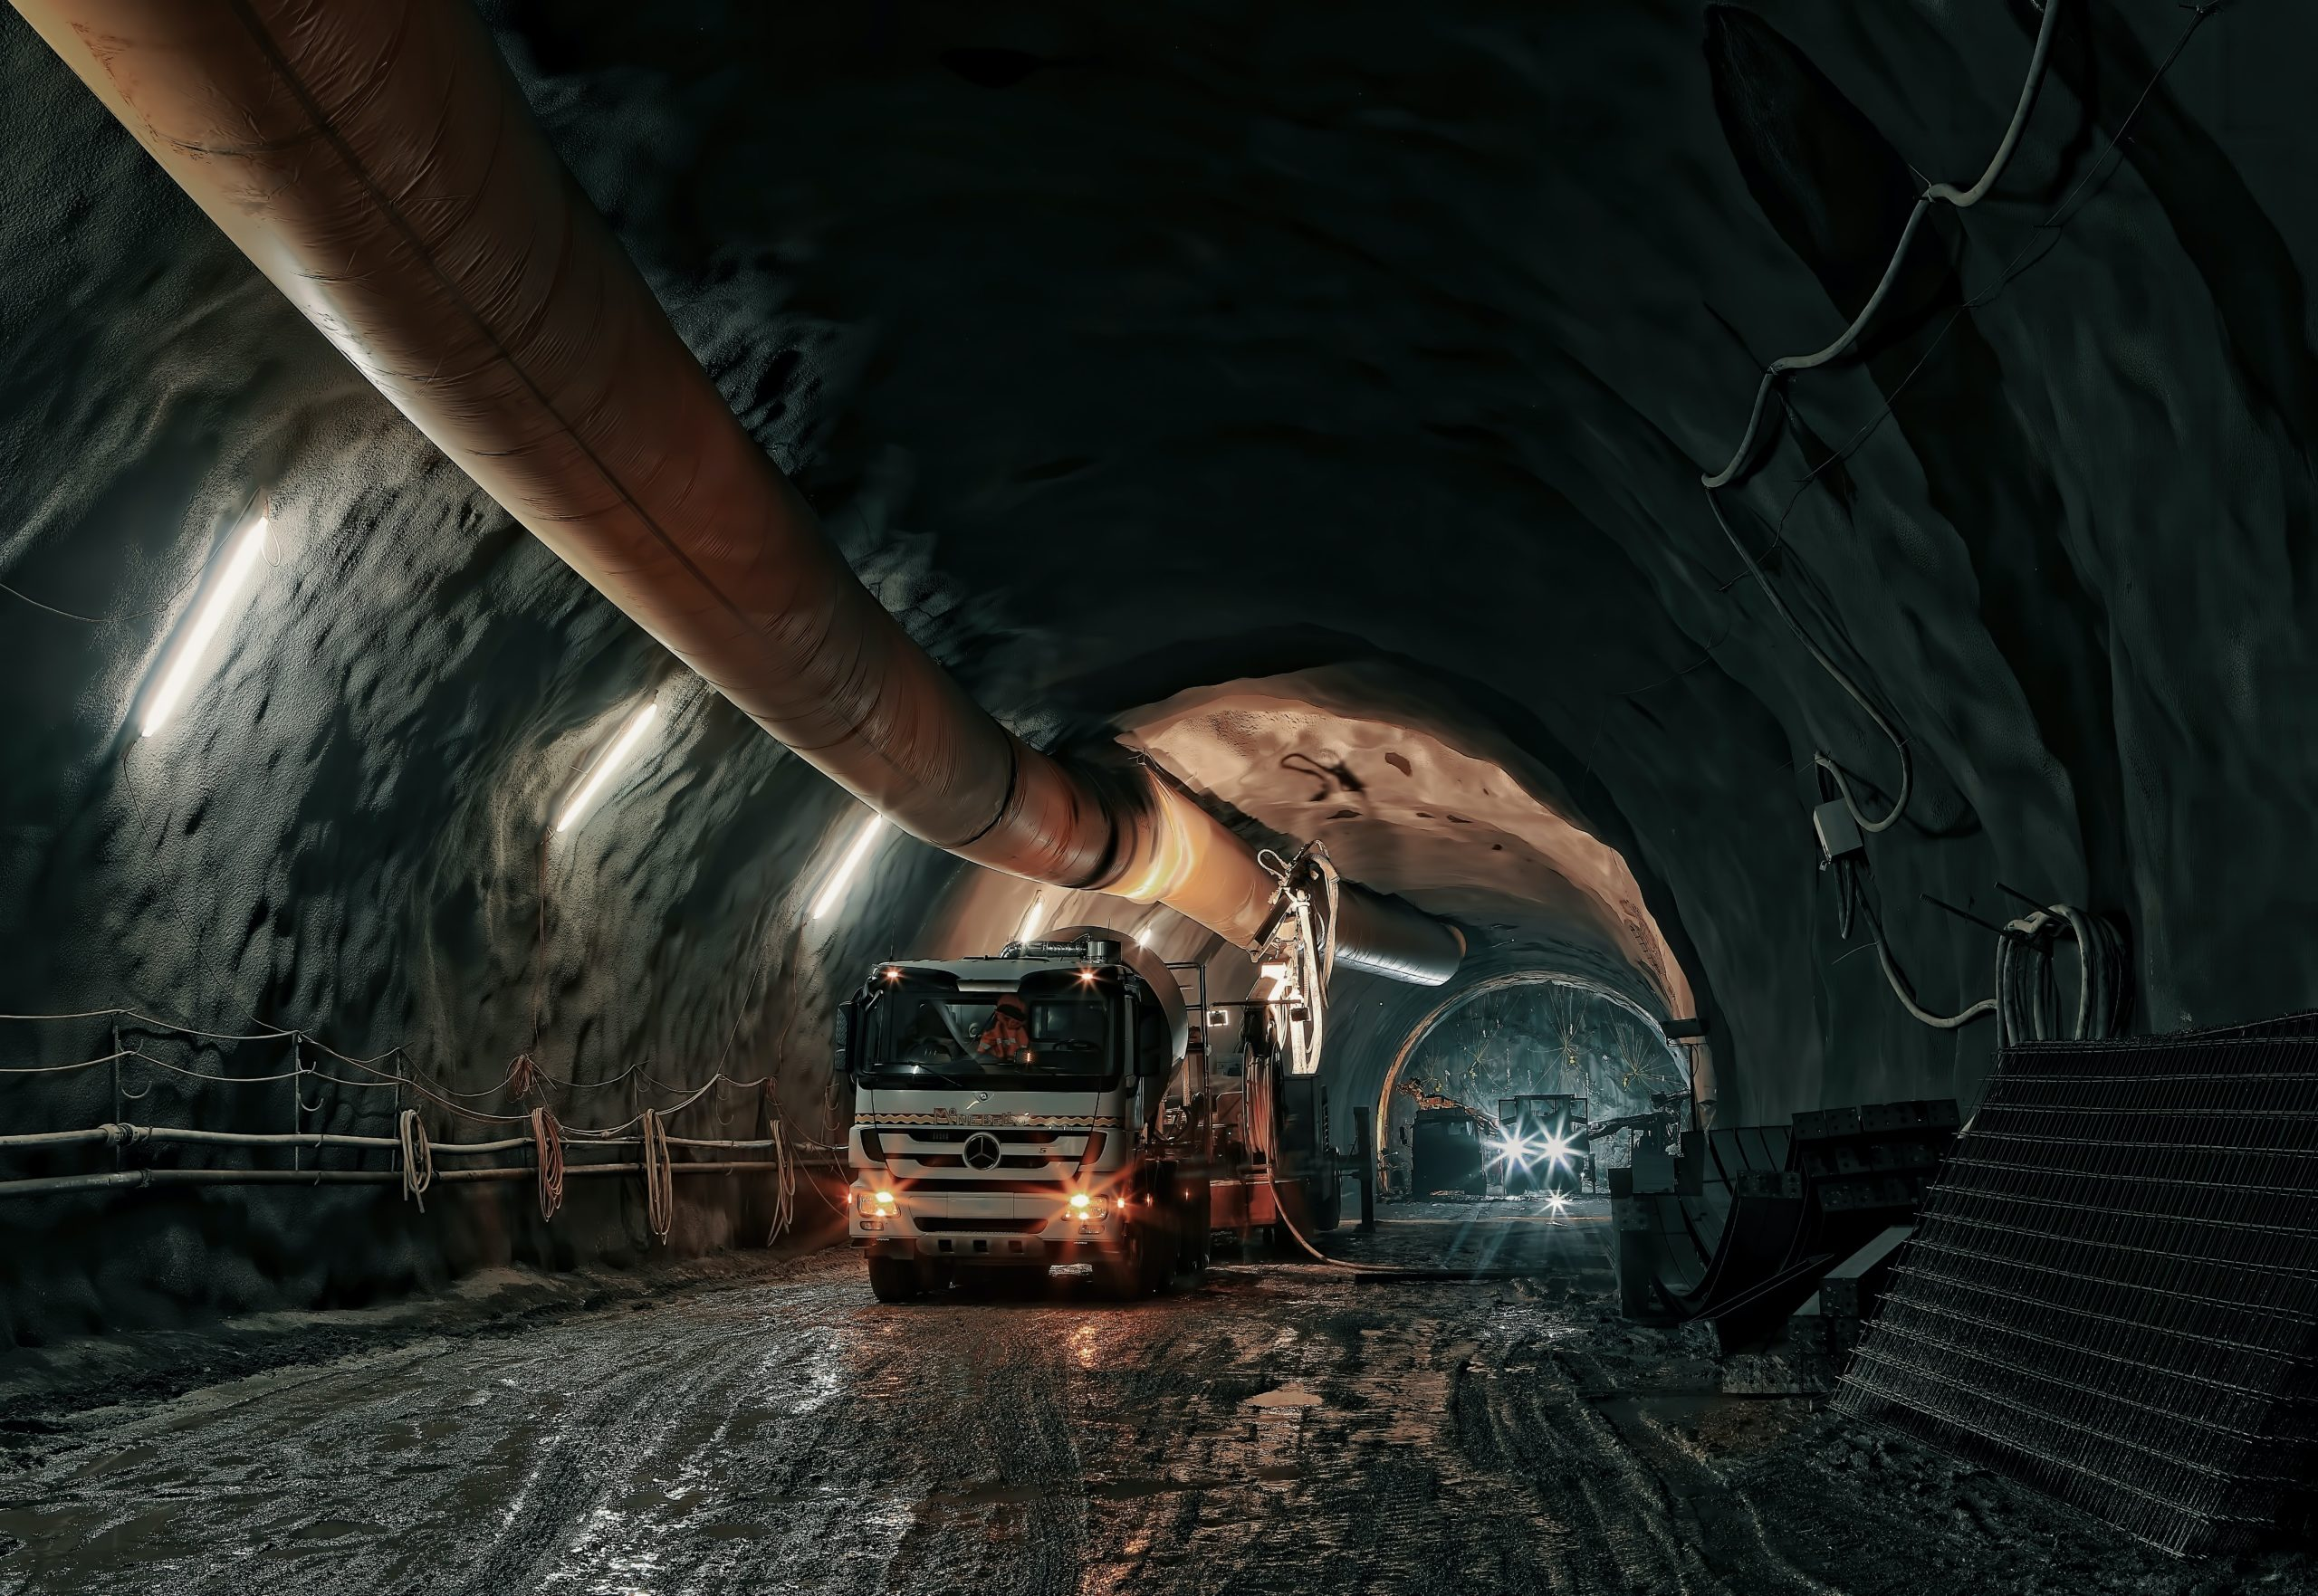 sensors in underground mining environments